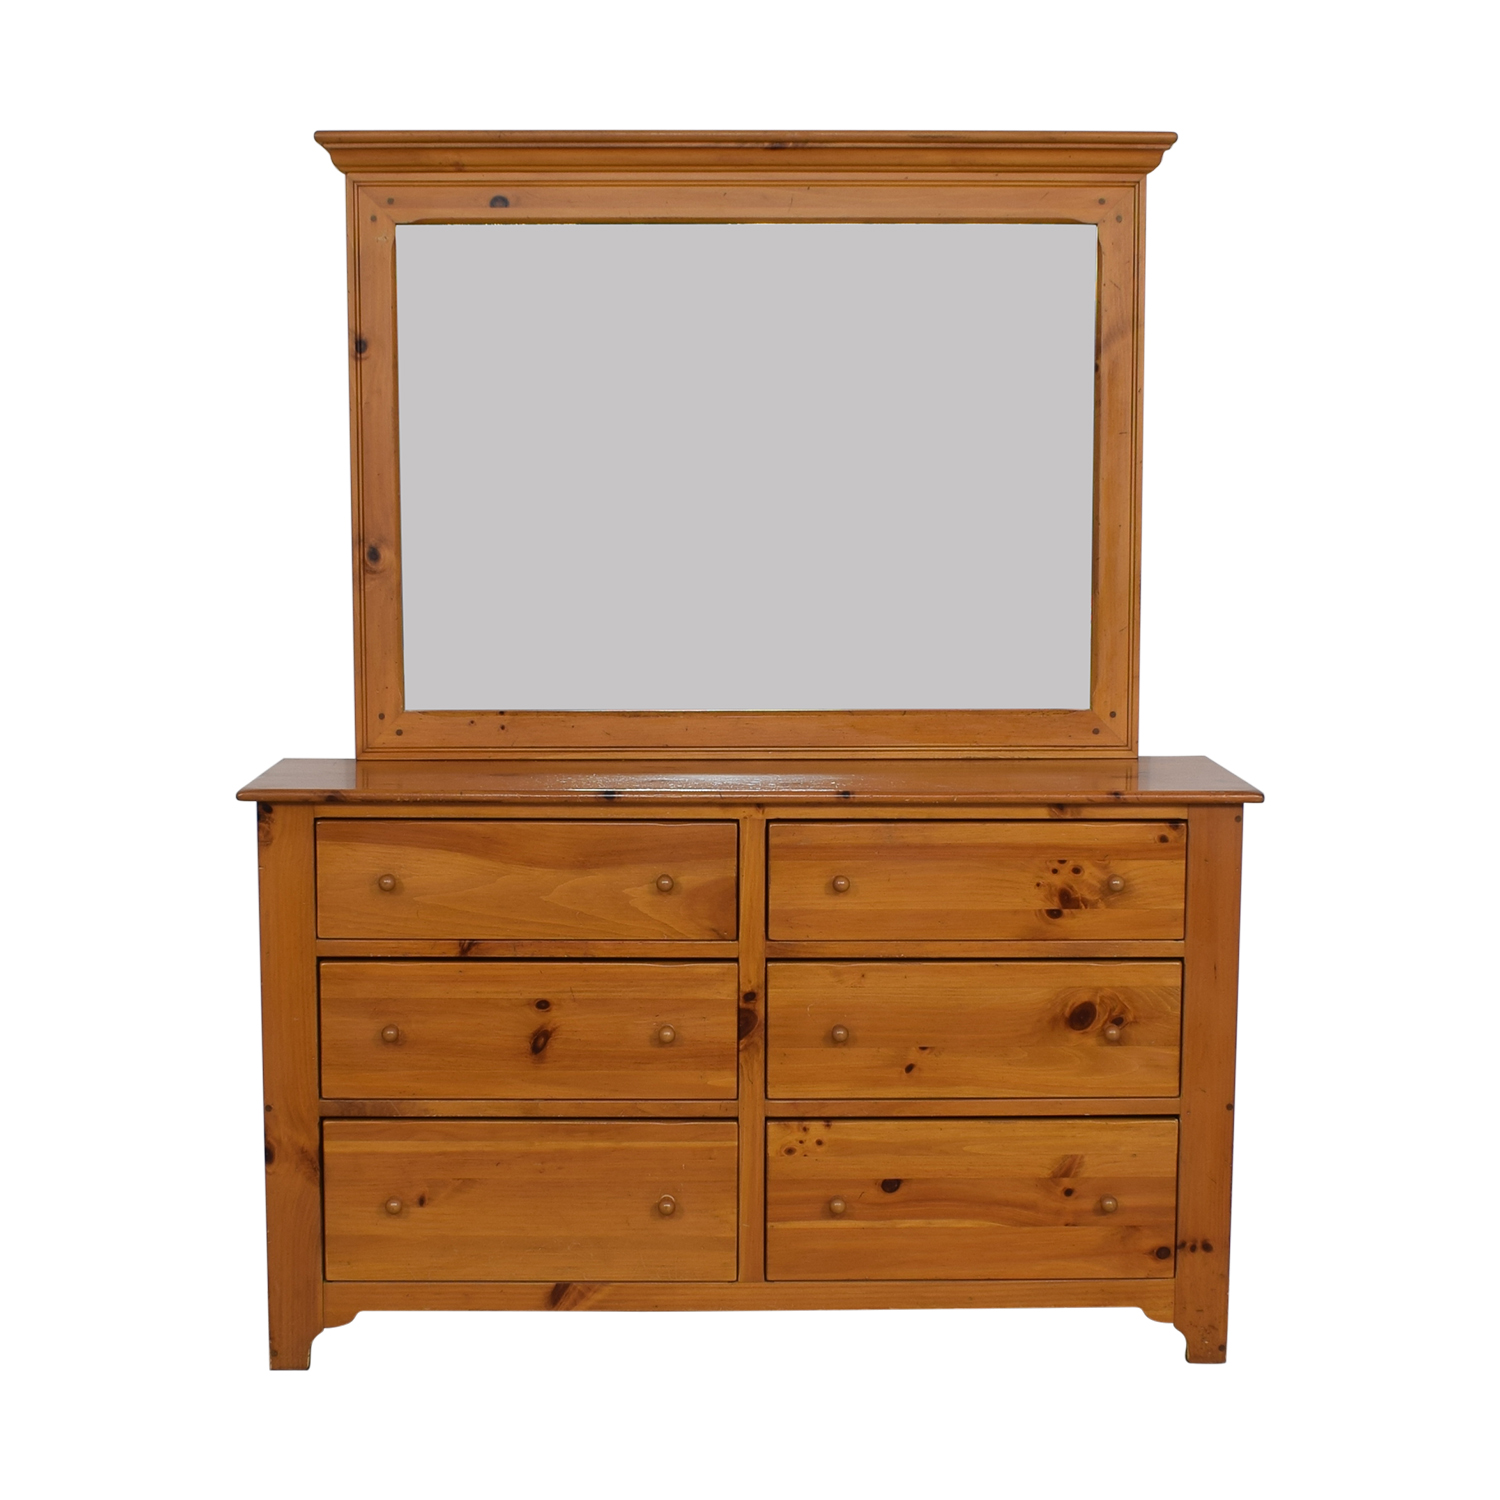 Ethan Allen Ethan Allen Pine Six Drawer Chest on sale